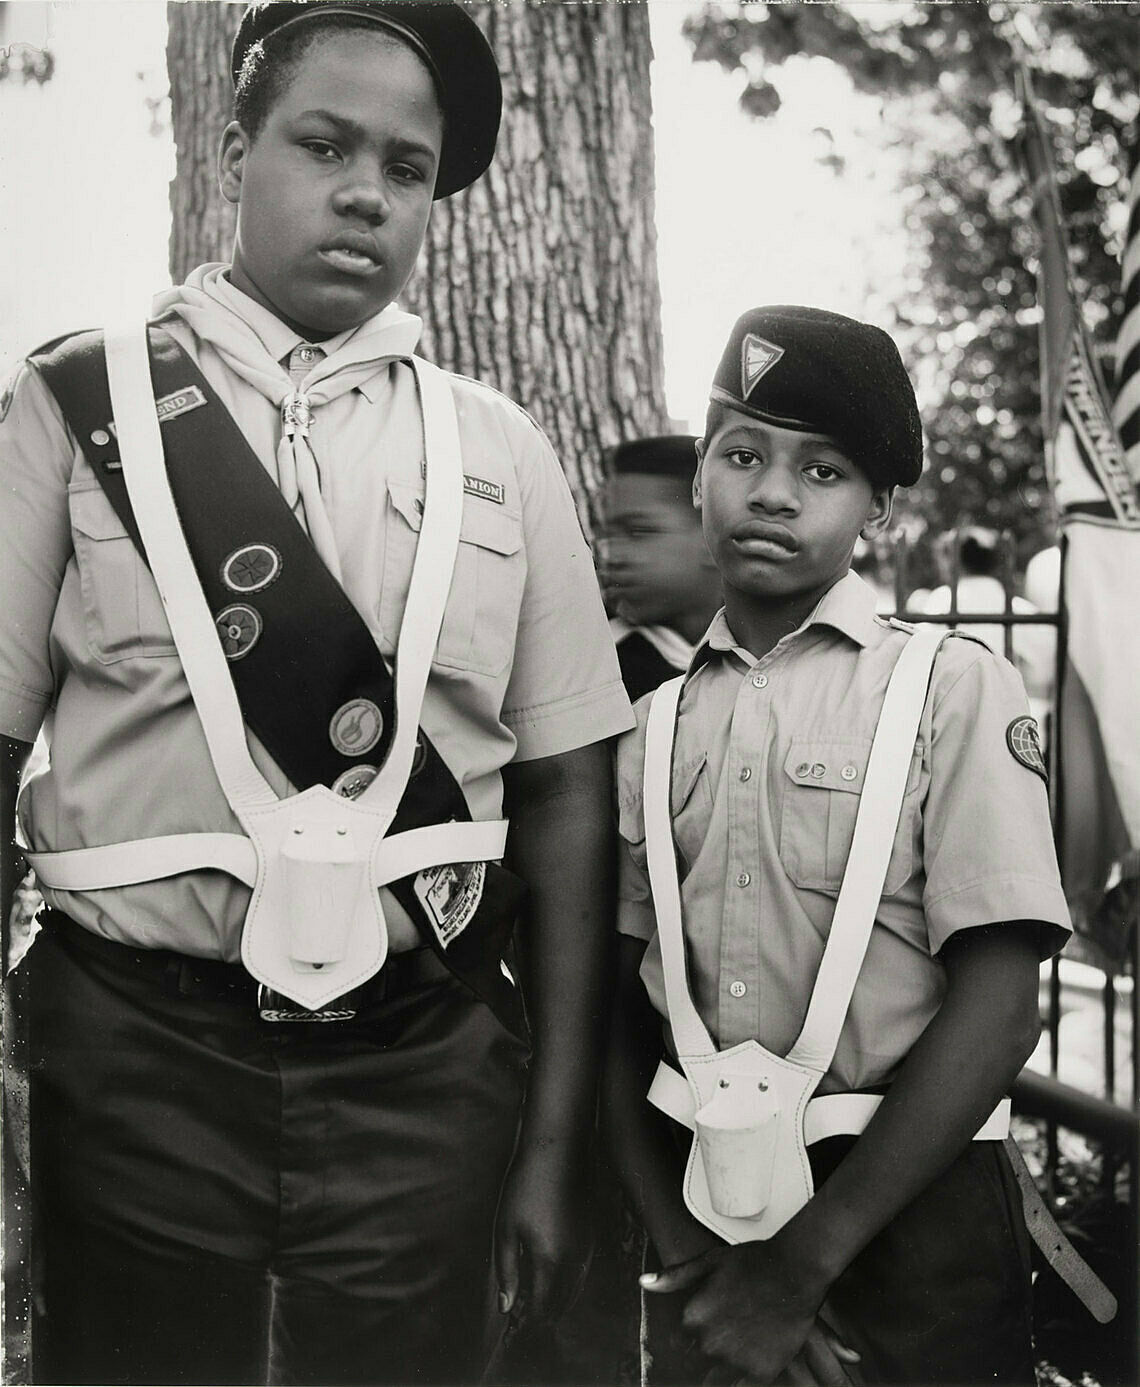 A black and white photograph by Dawoud Bey. Two young African American boys wear scout uniforms, with somber faces.